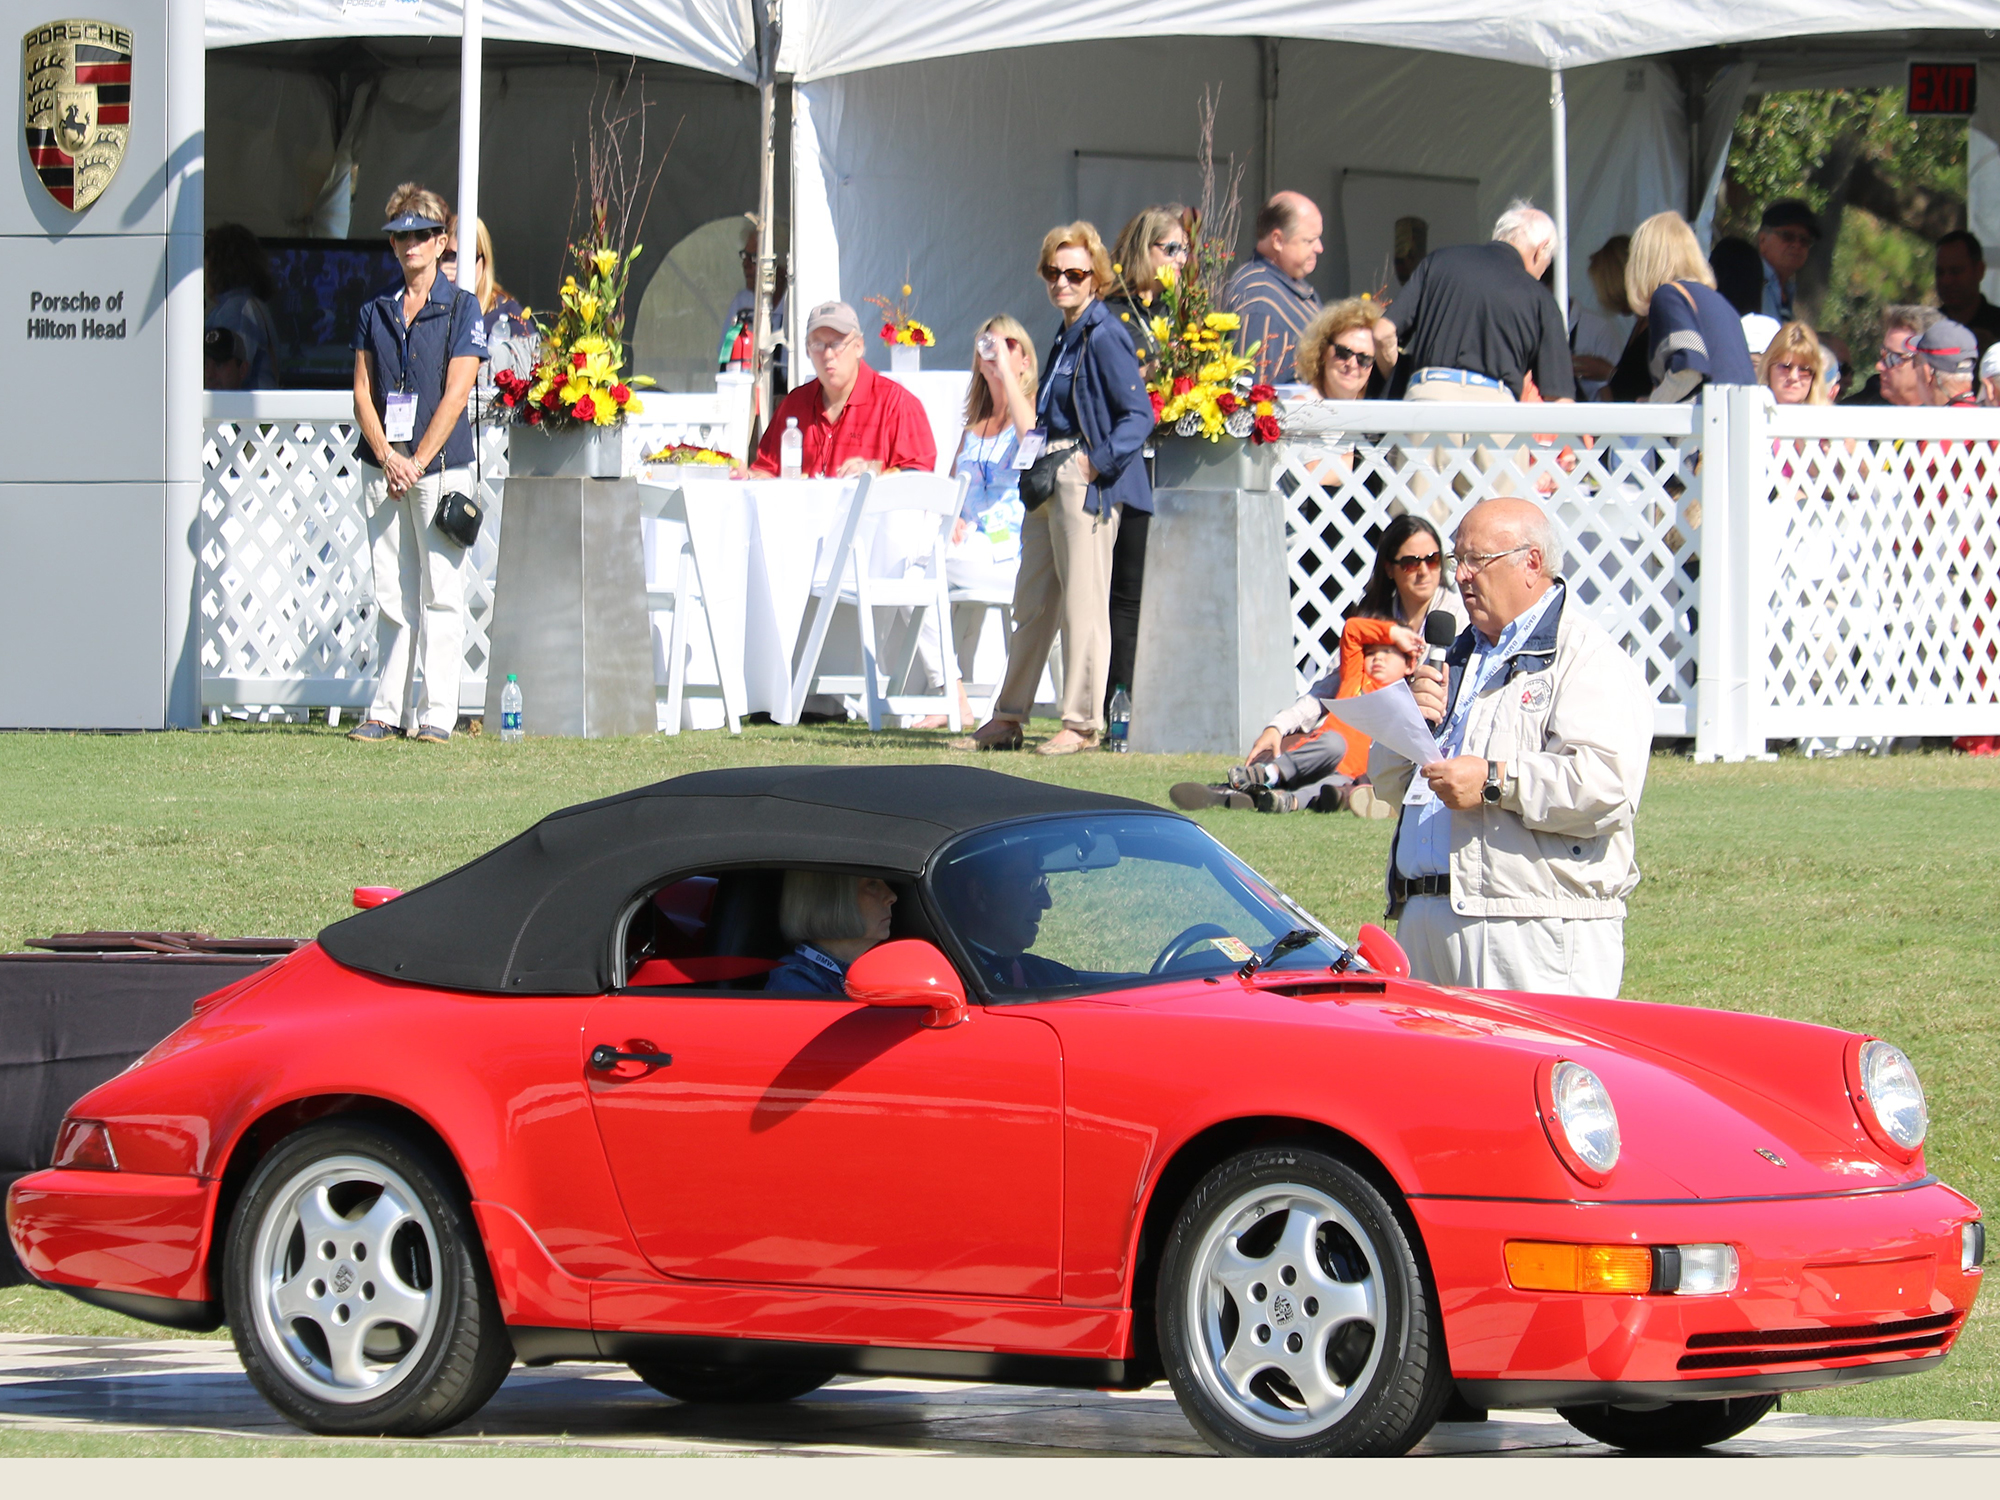 1994 Porsche 911 Speedster in Guards Red